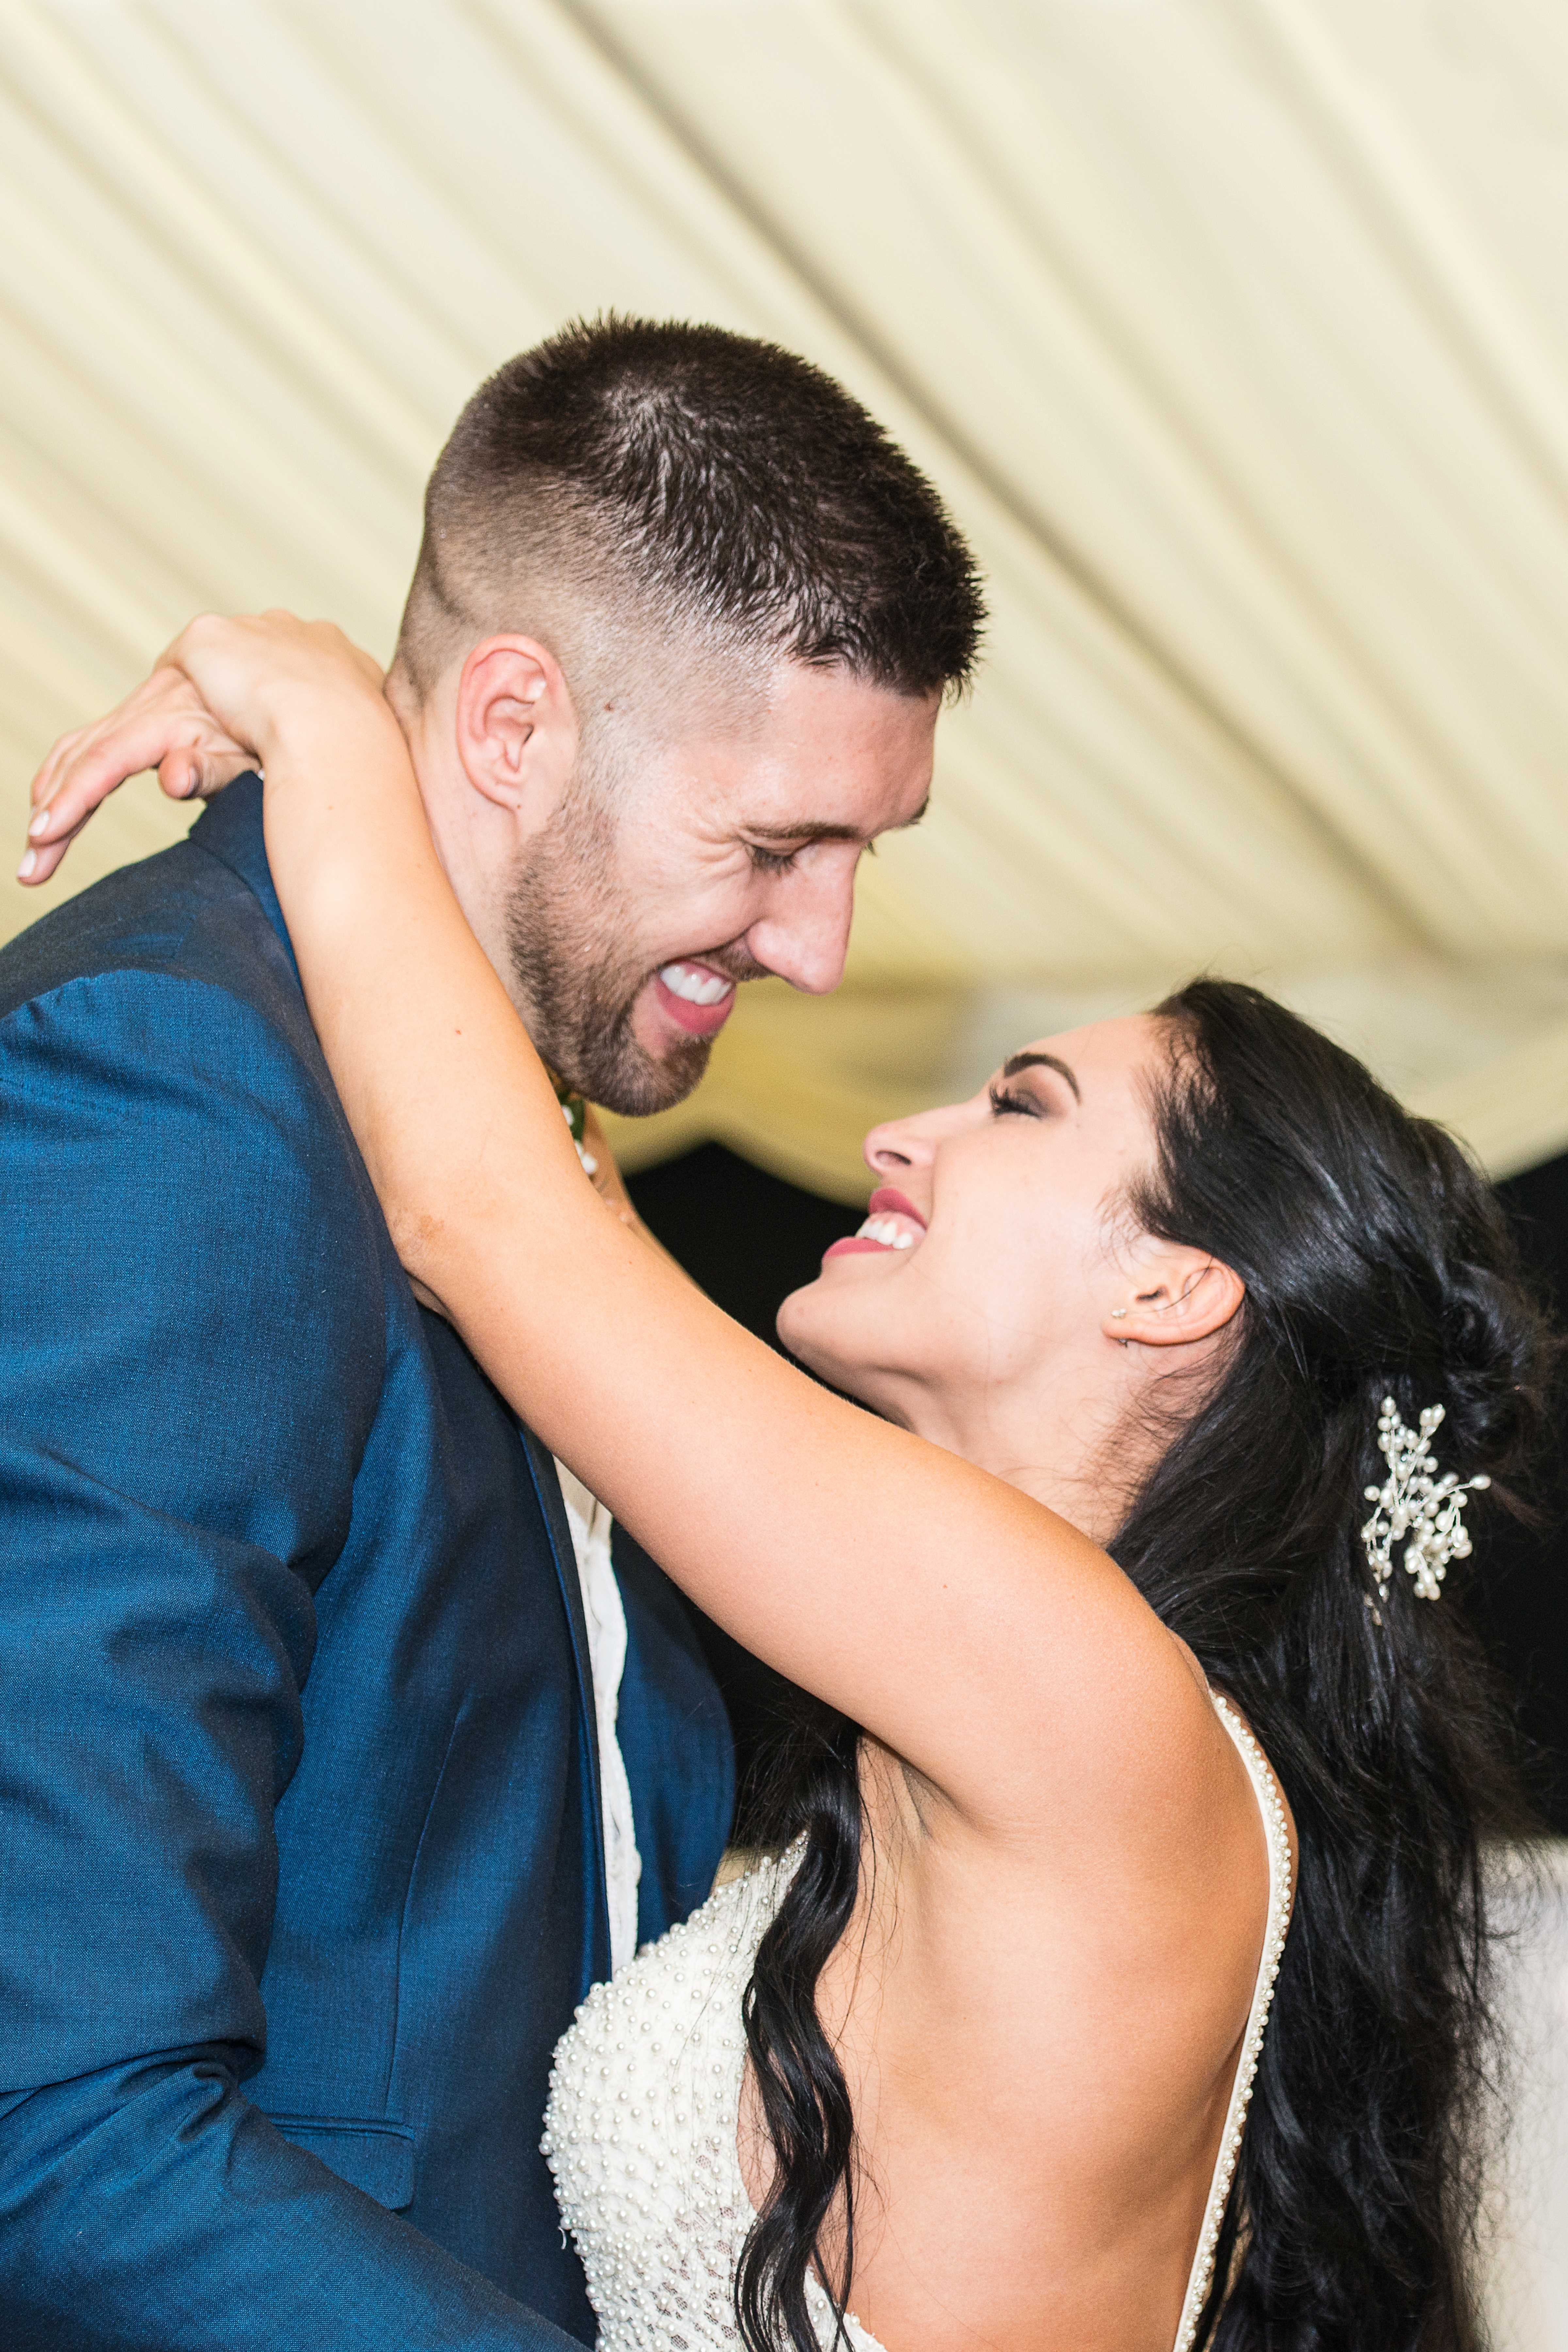 Newlywed couple make eye contact with each other during the first dance.